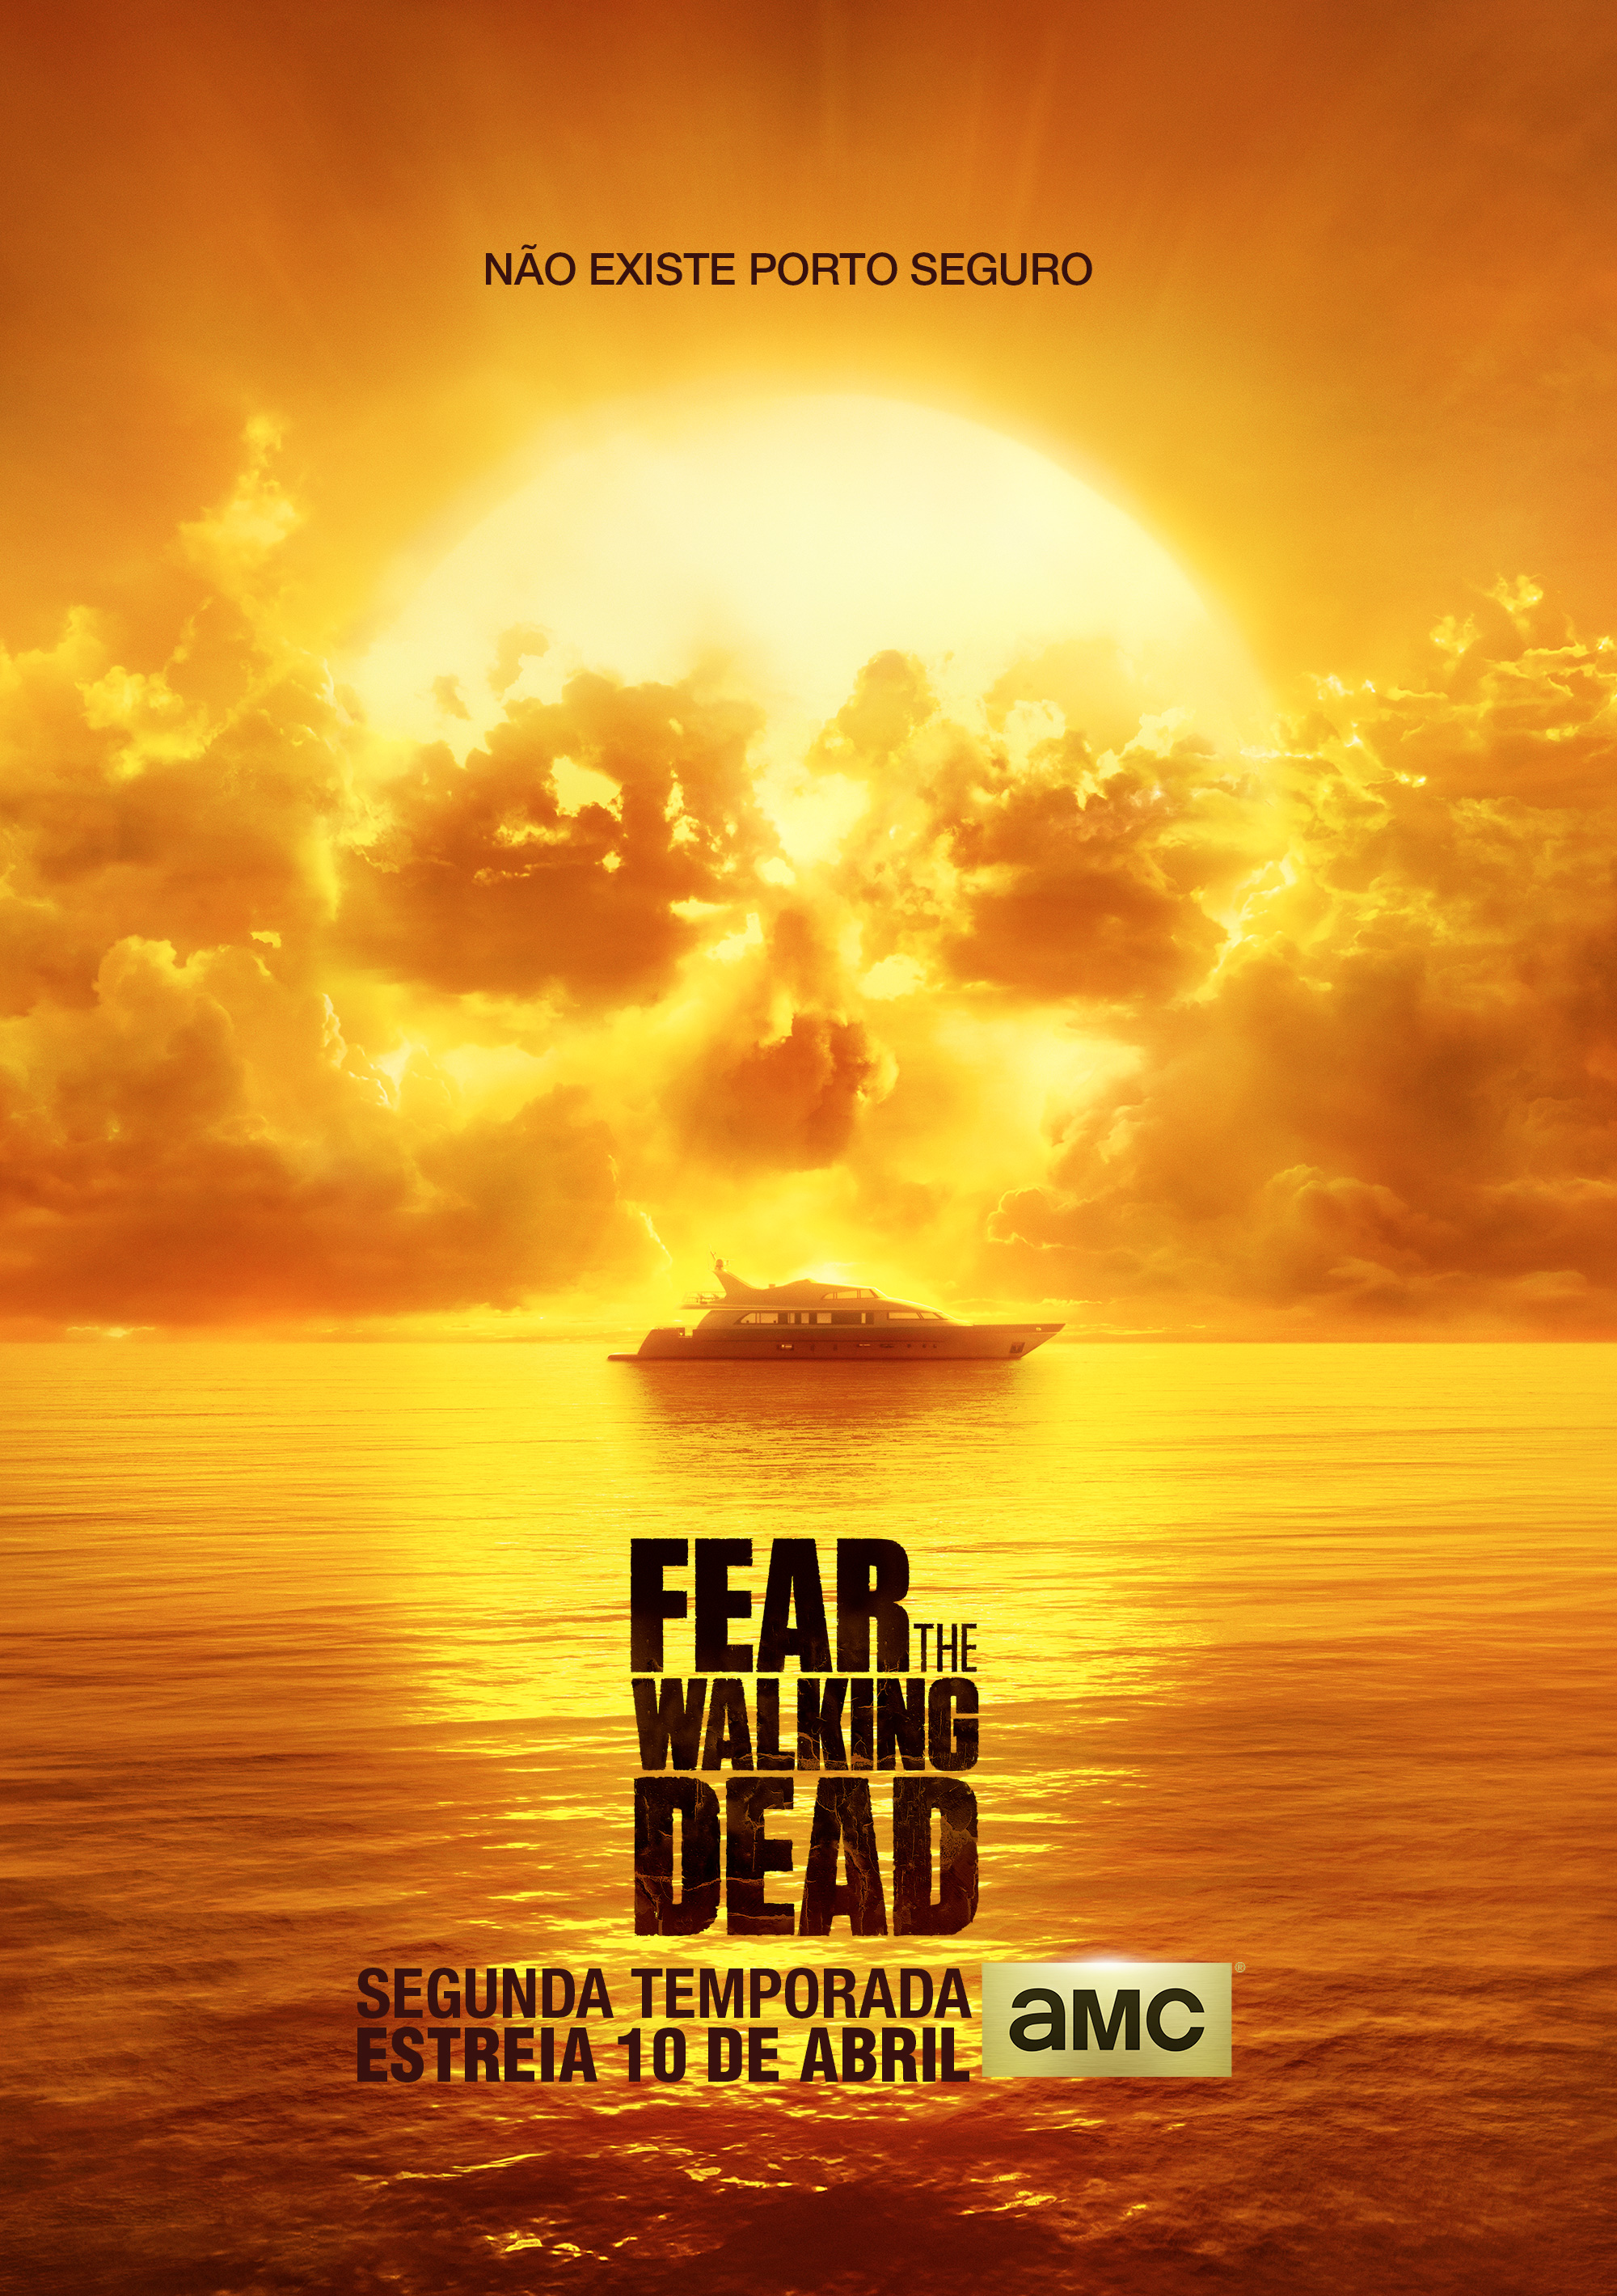 10259_FTWD_S2_vertical_portugues